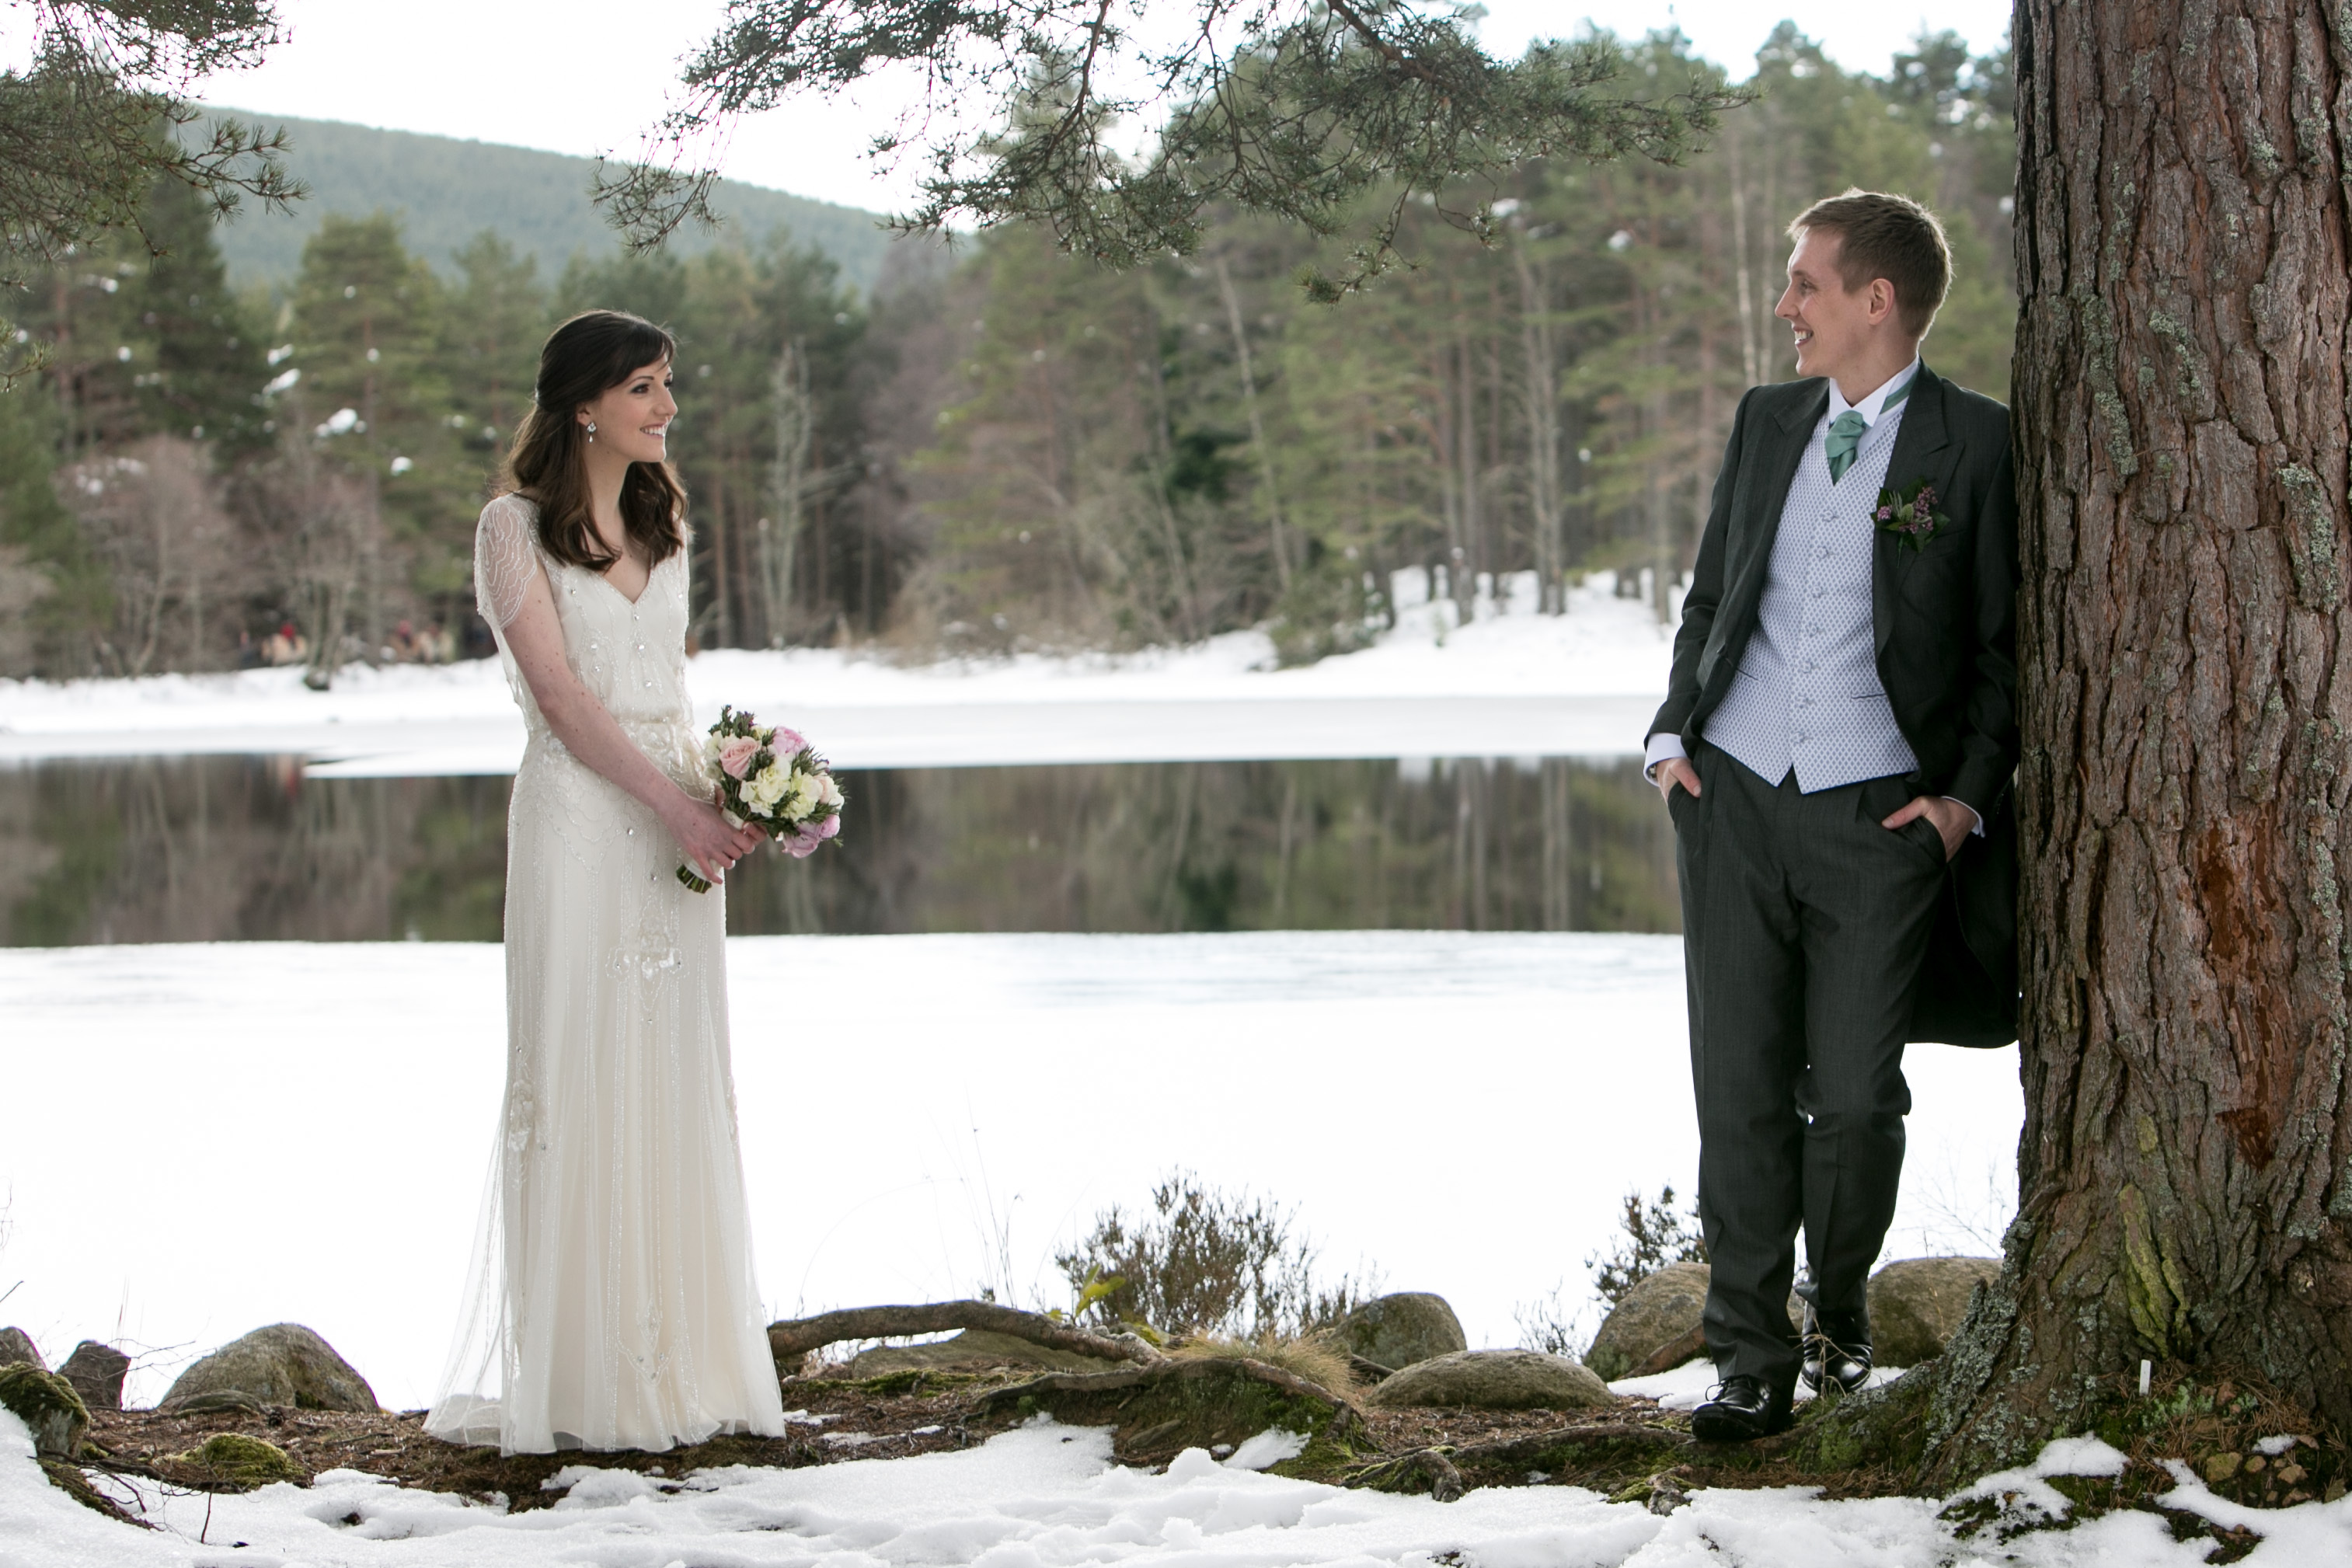 ee00bc2bb98 Five winter wedding ideas you don t want to miss